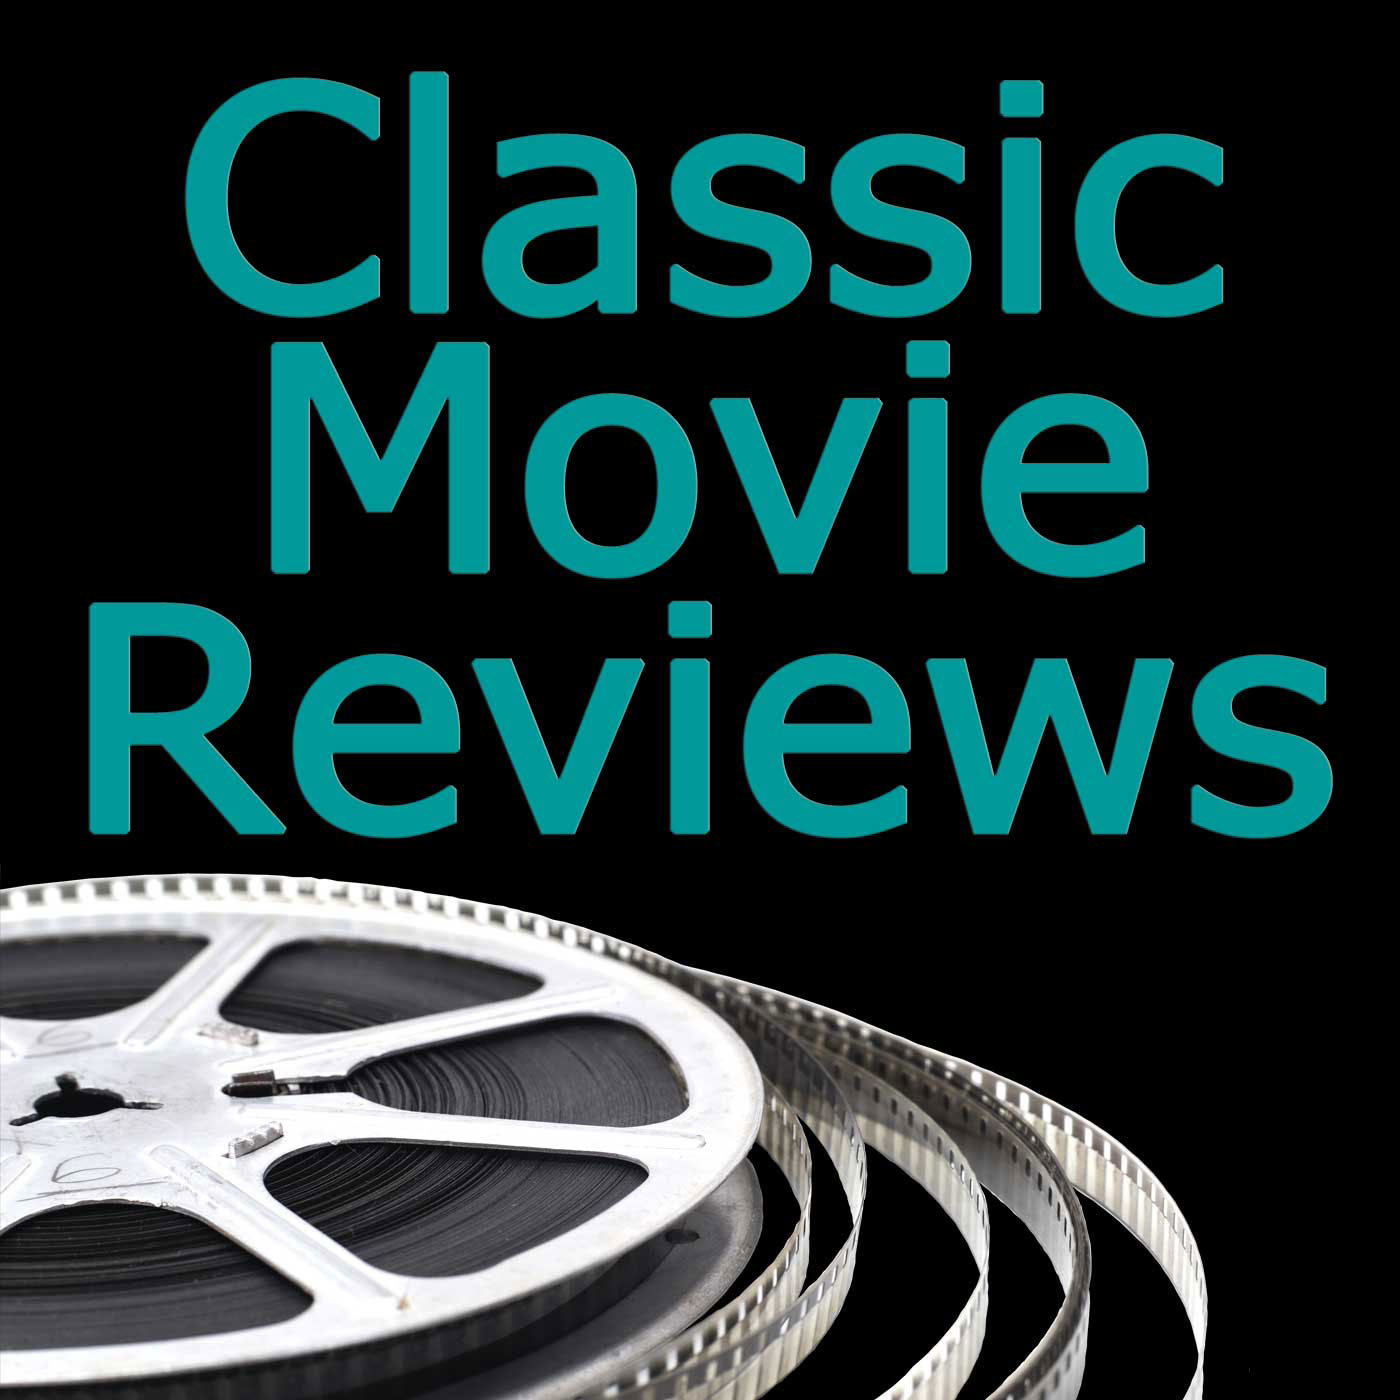 Classic Movie Reviews